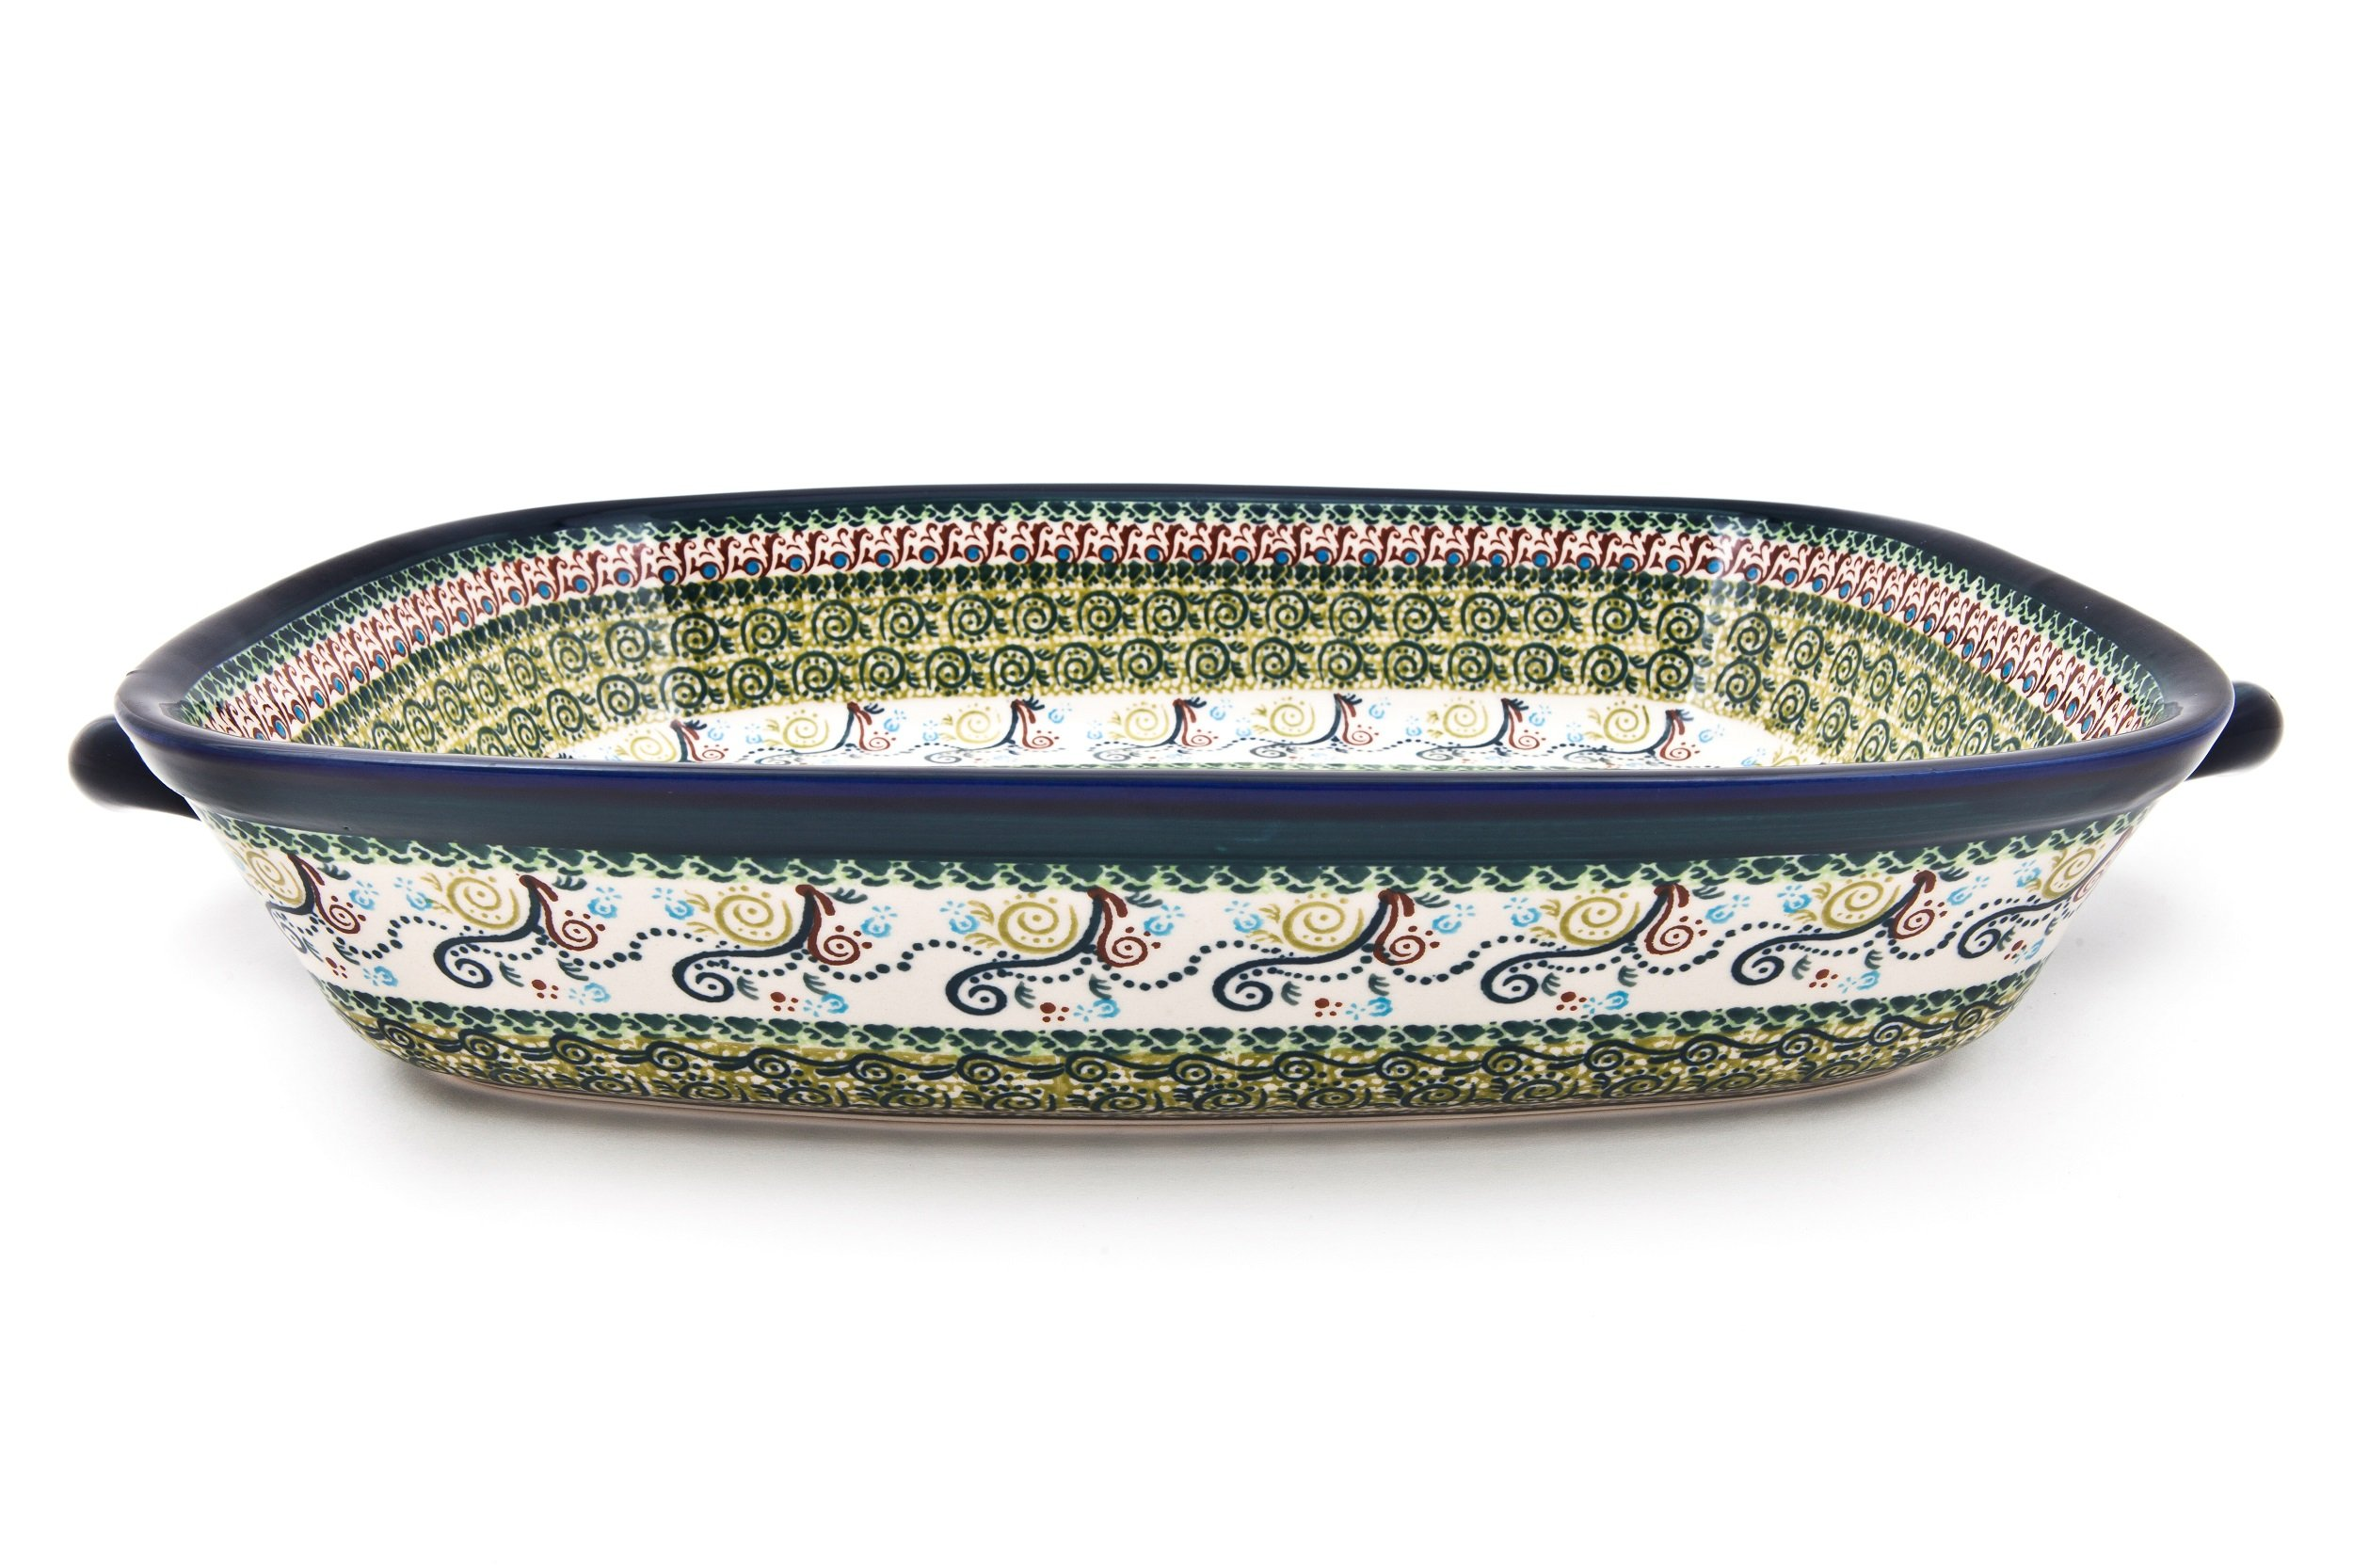 Hand-Decorated Polish Pottery Rectangular Serving Bowl with High Edge and Two Henke 49x30x8,2 cm Volume 4.5 Litre Design DU163